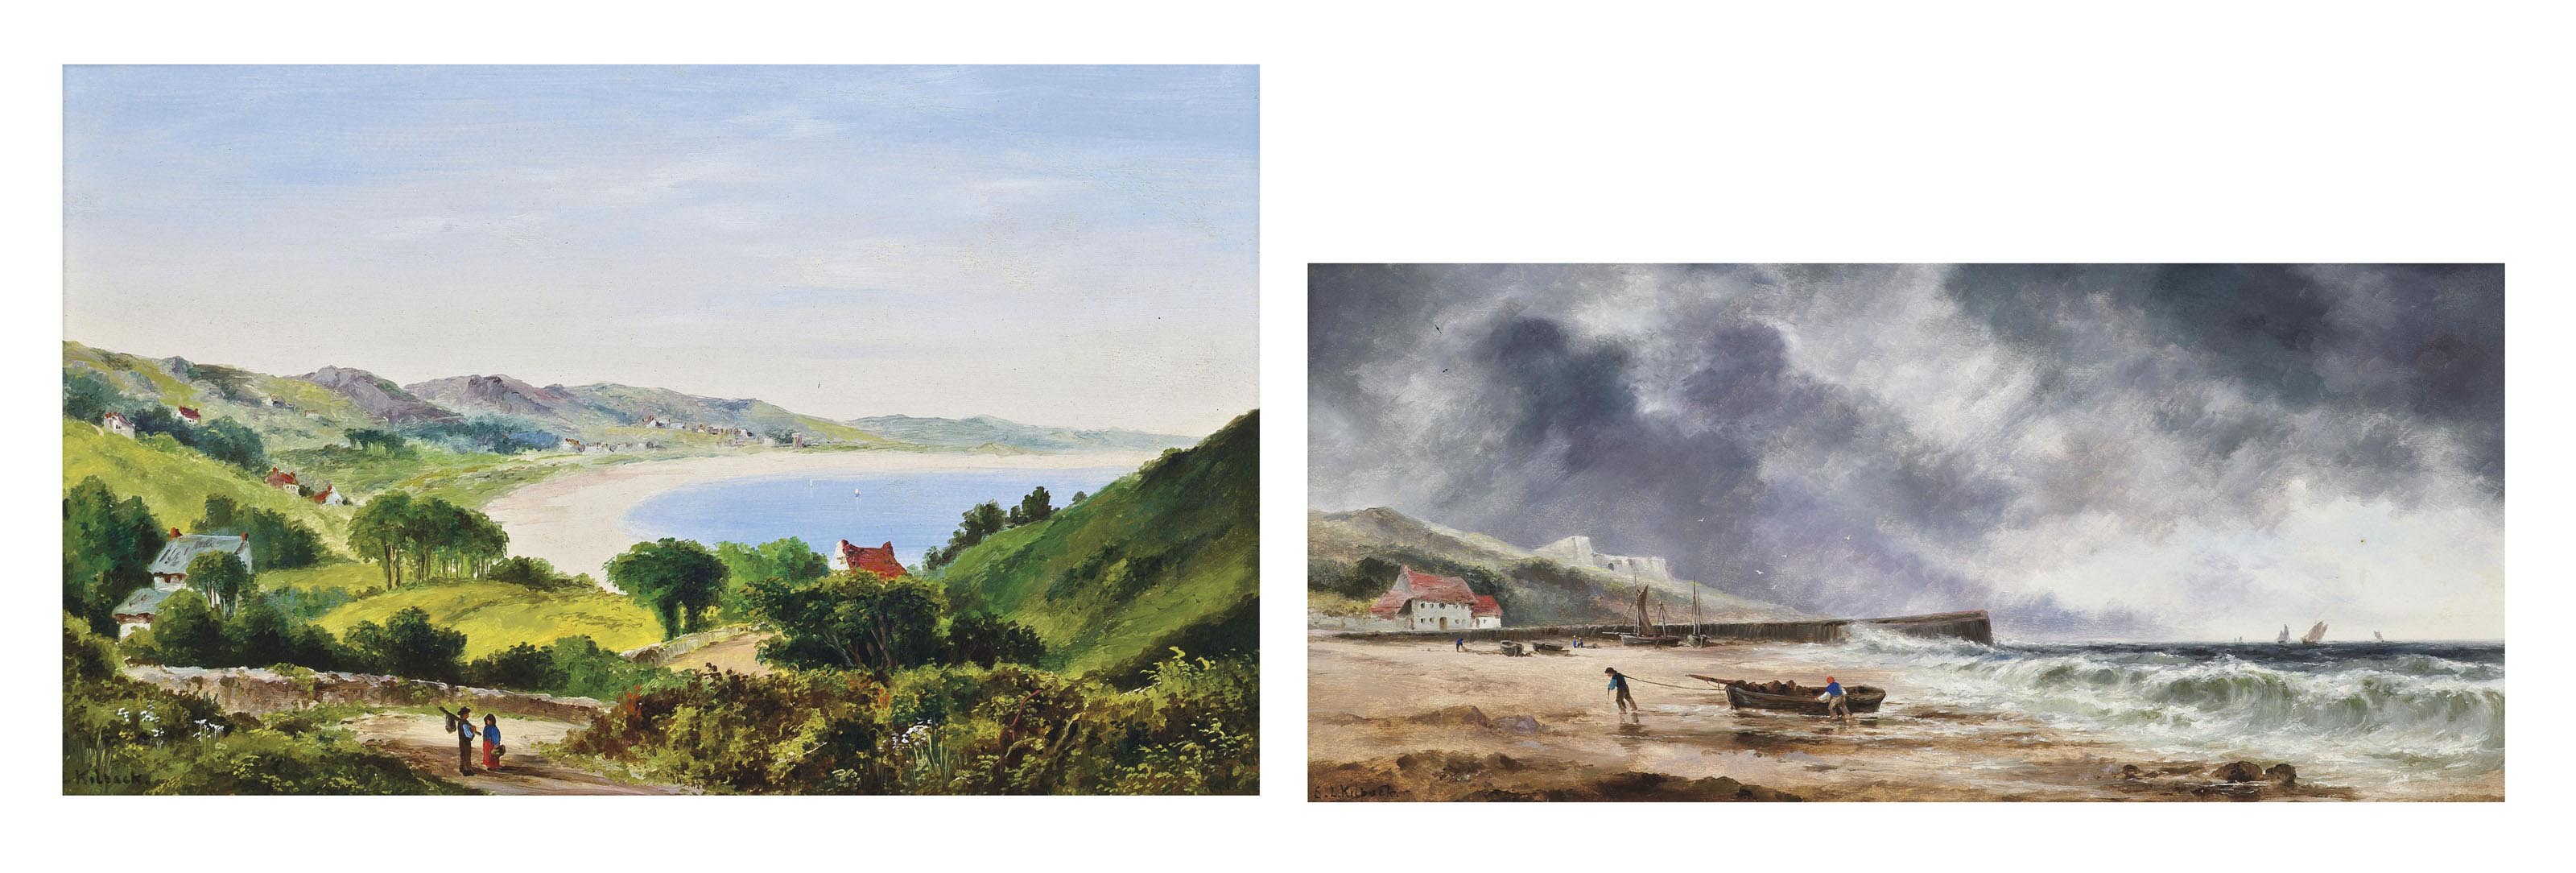 A sunny day, St Brelade's Bay, Jersey; and A squall approaching Rozel Bay, Jersey (both illustrated)